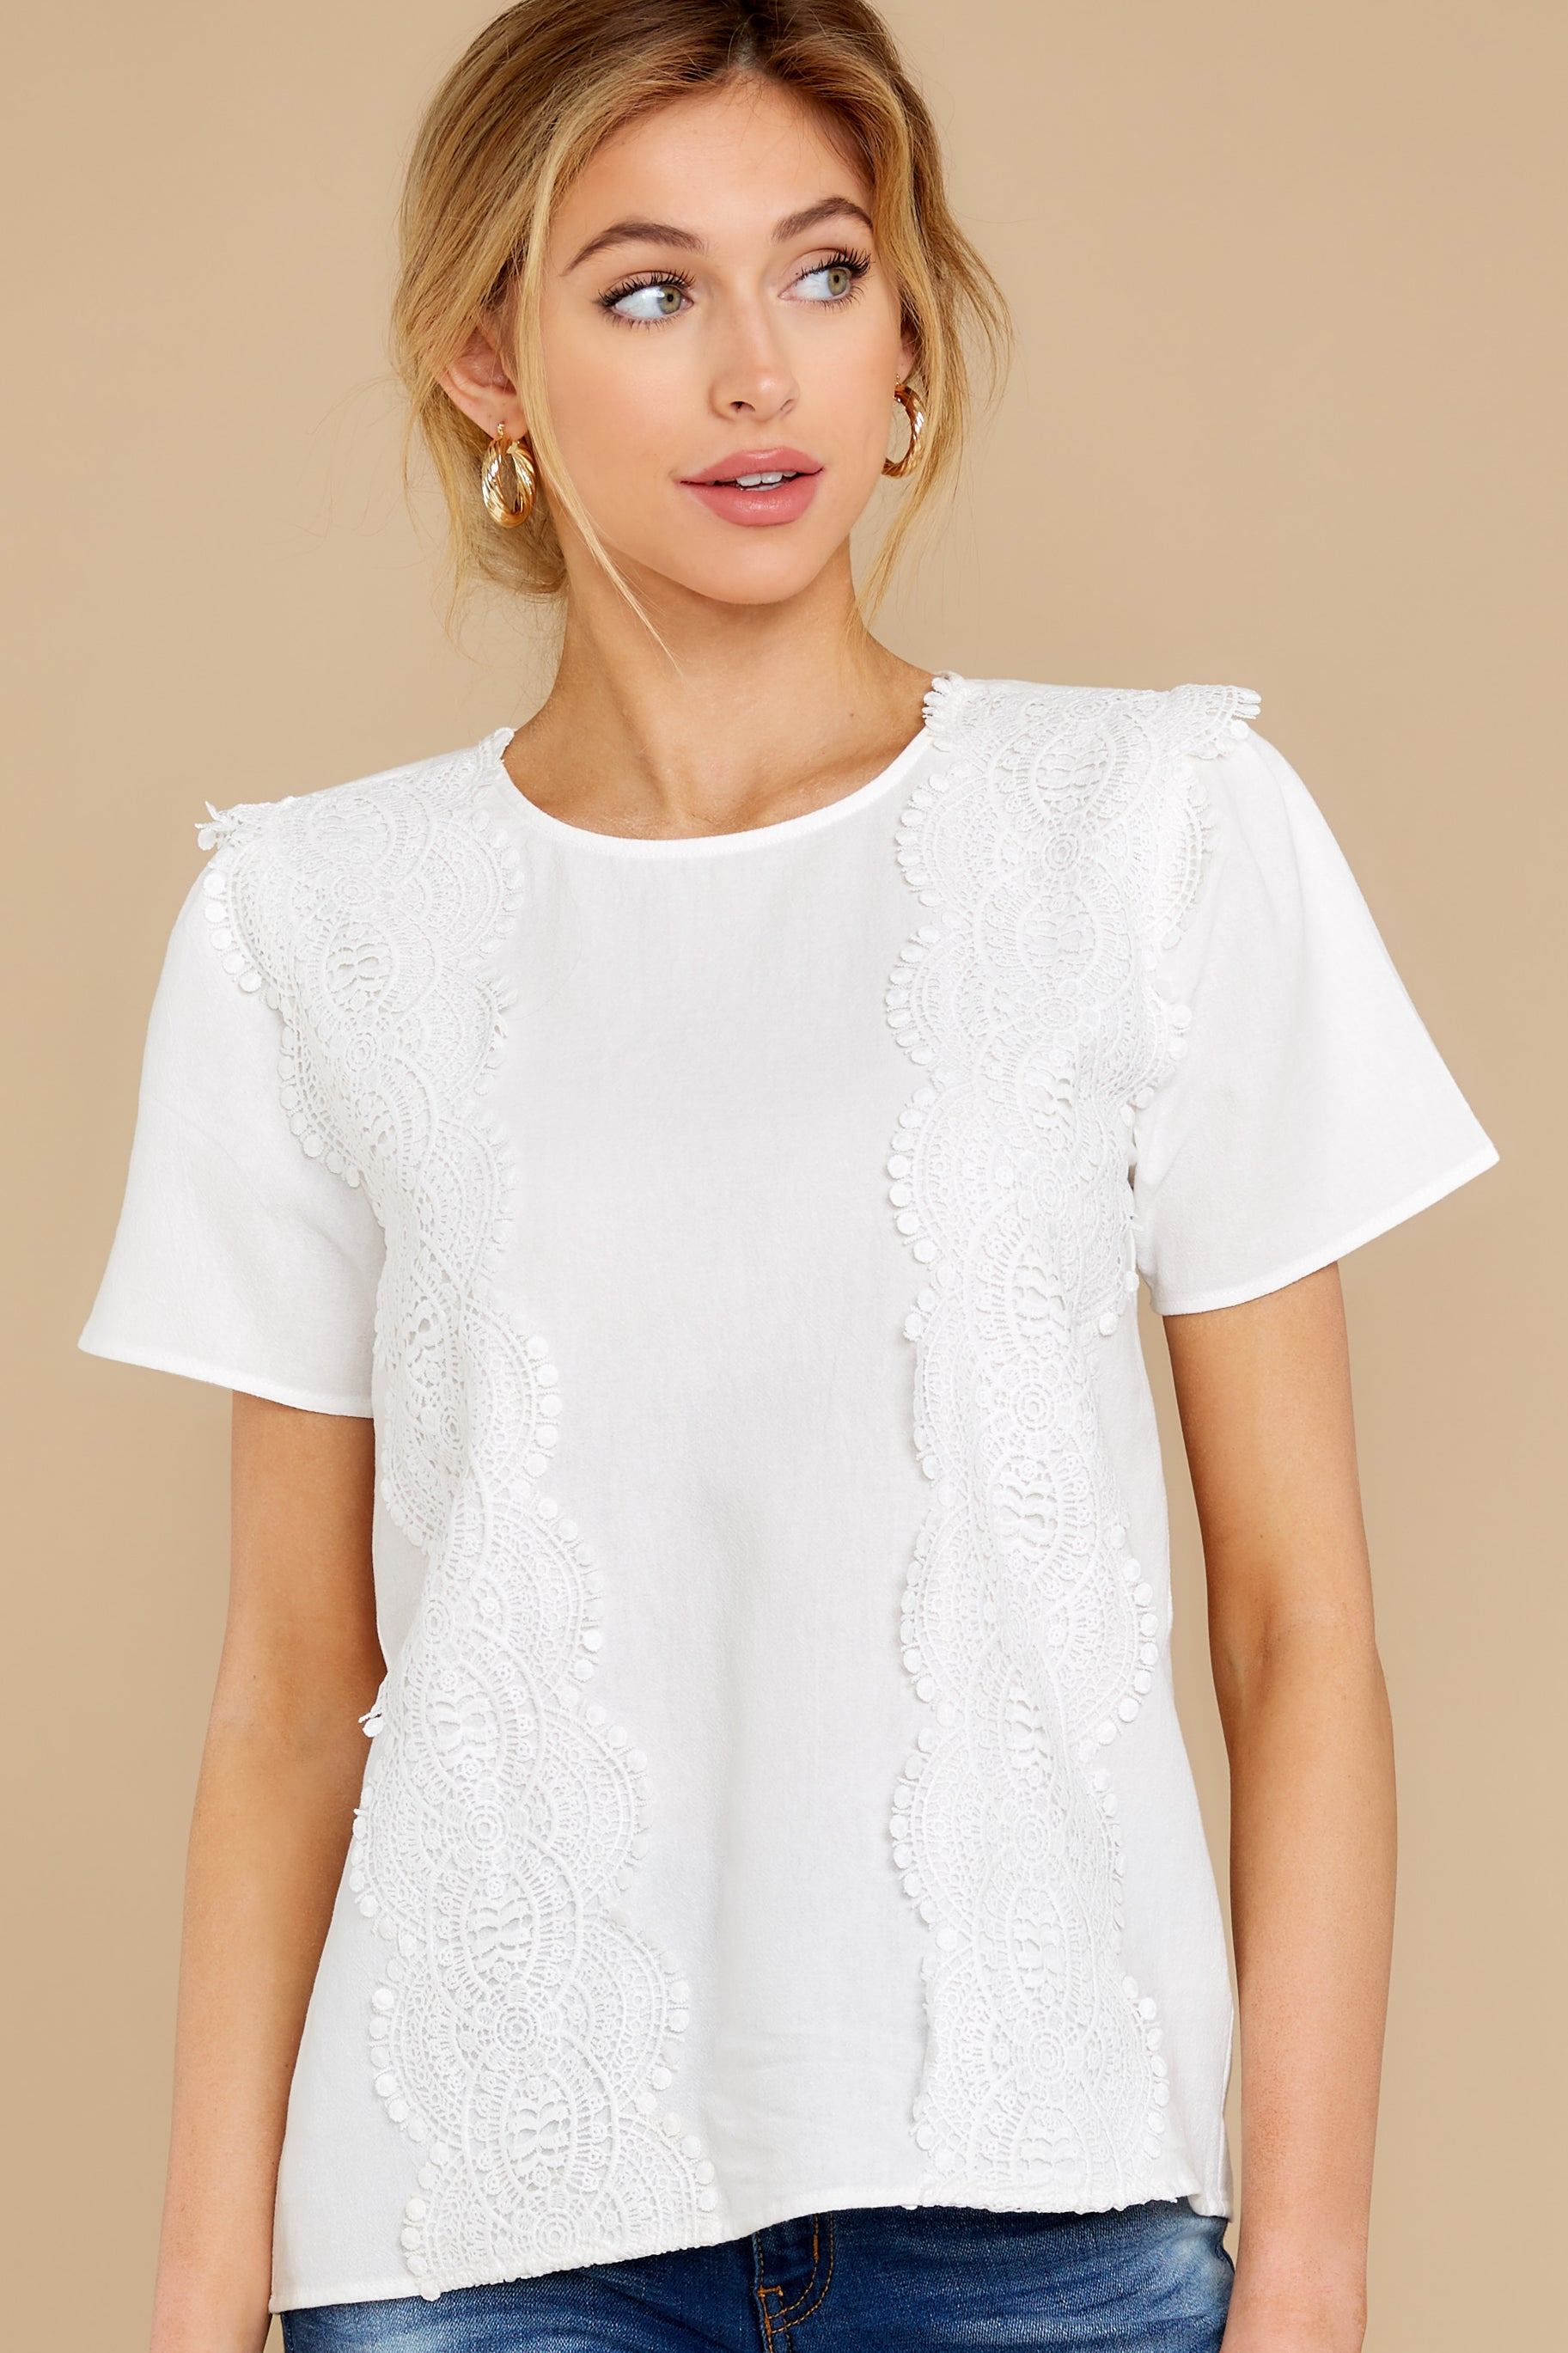 7 Meet You Here White Lace Top at reddress.com